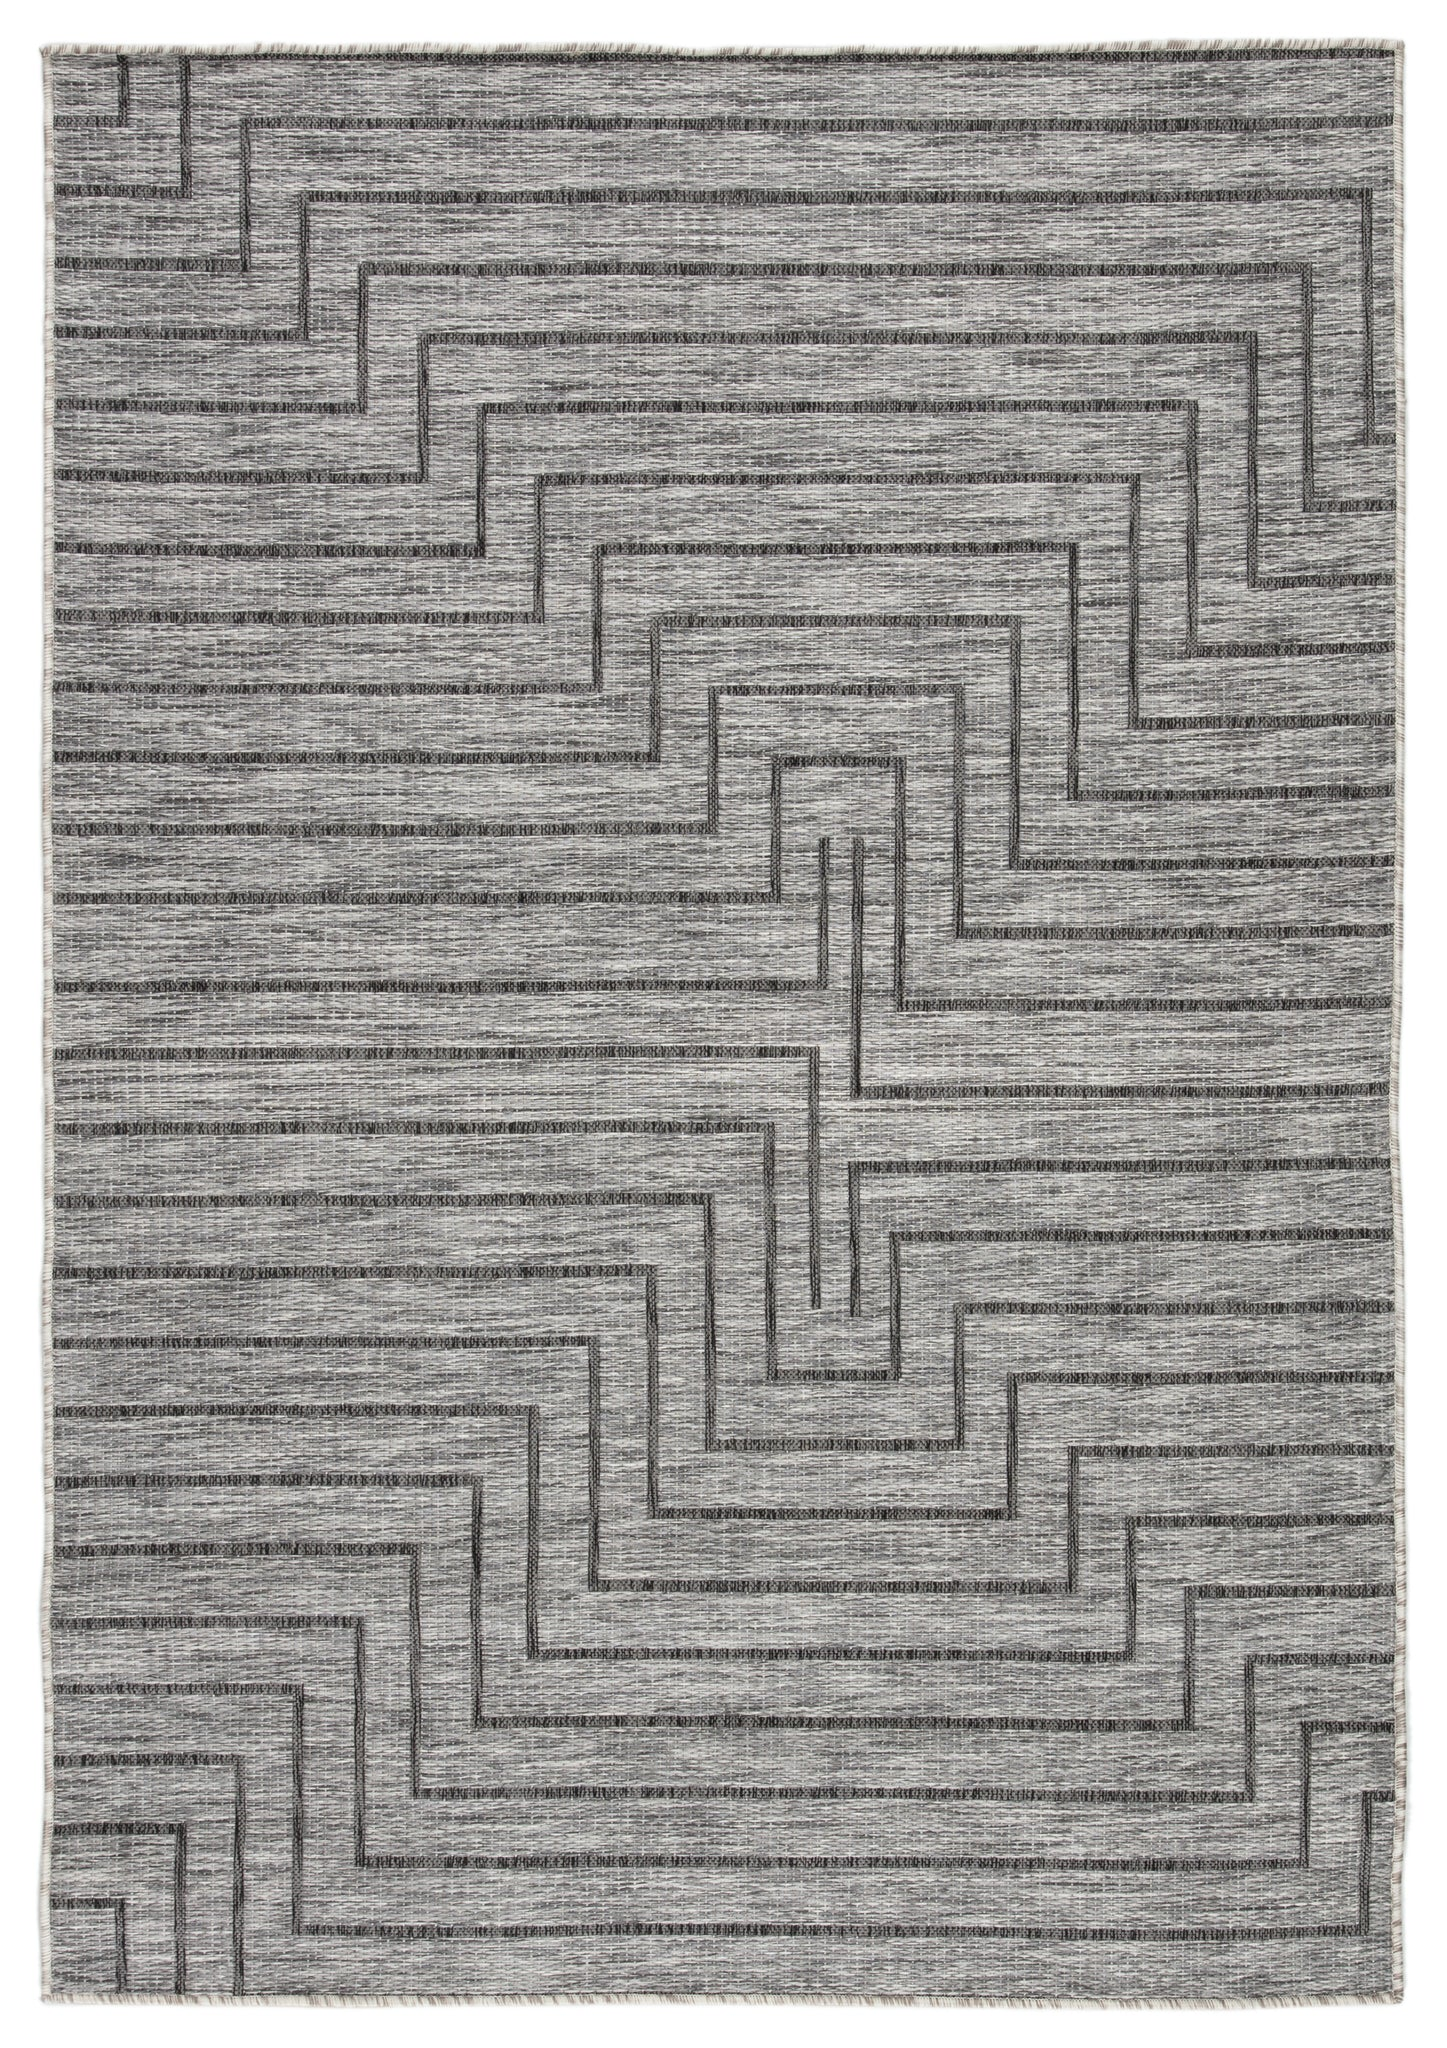 Xantho Indoor Outdoor Geometric Gray Area Rug Burke Decor